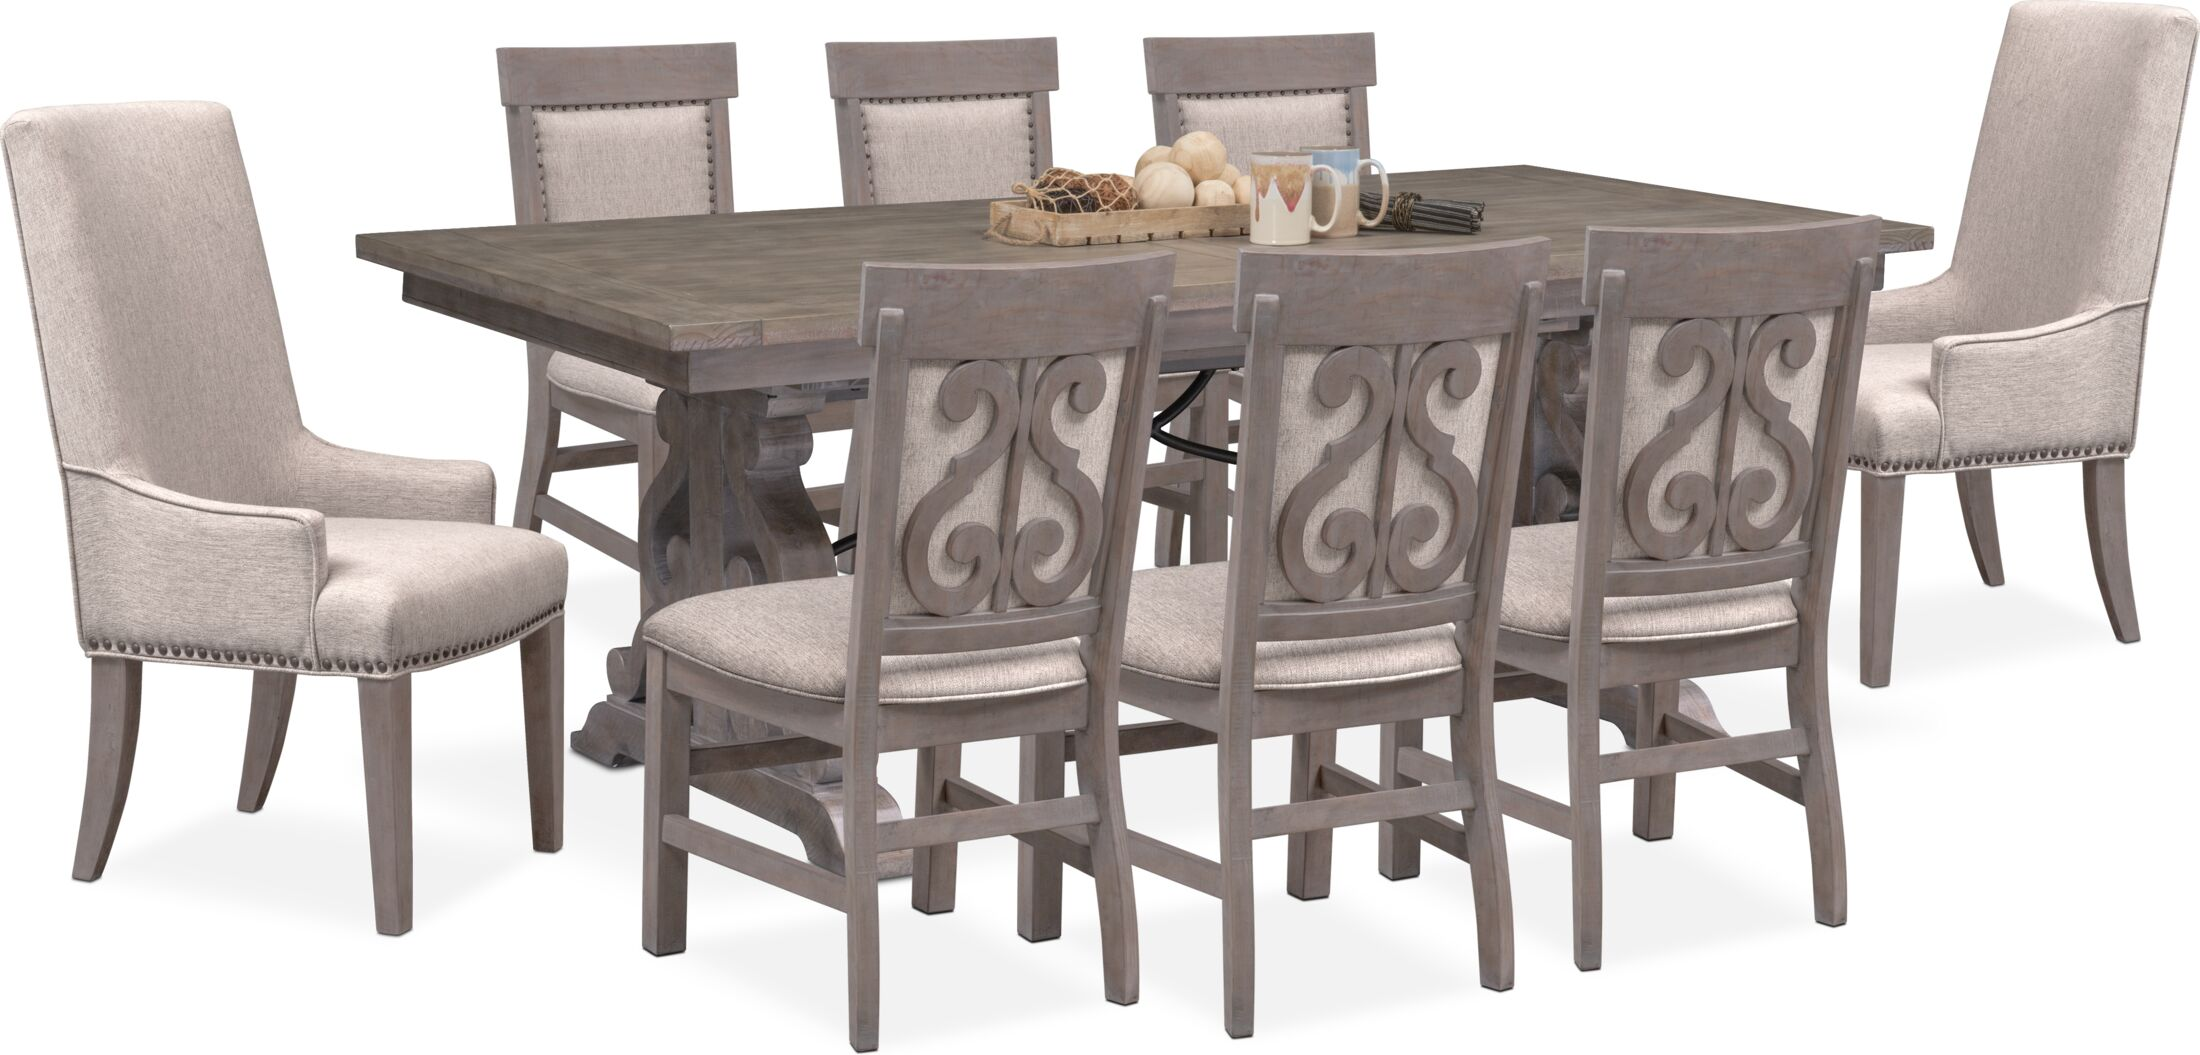 Charthouse Rectangular Dining Table 2 Host Chairs And 6 Upholstered Dining Chairs Value City Furniture